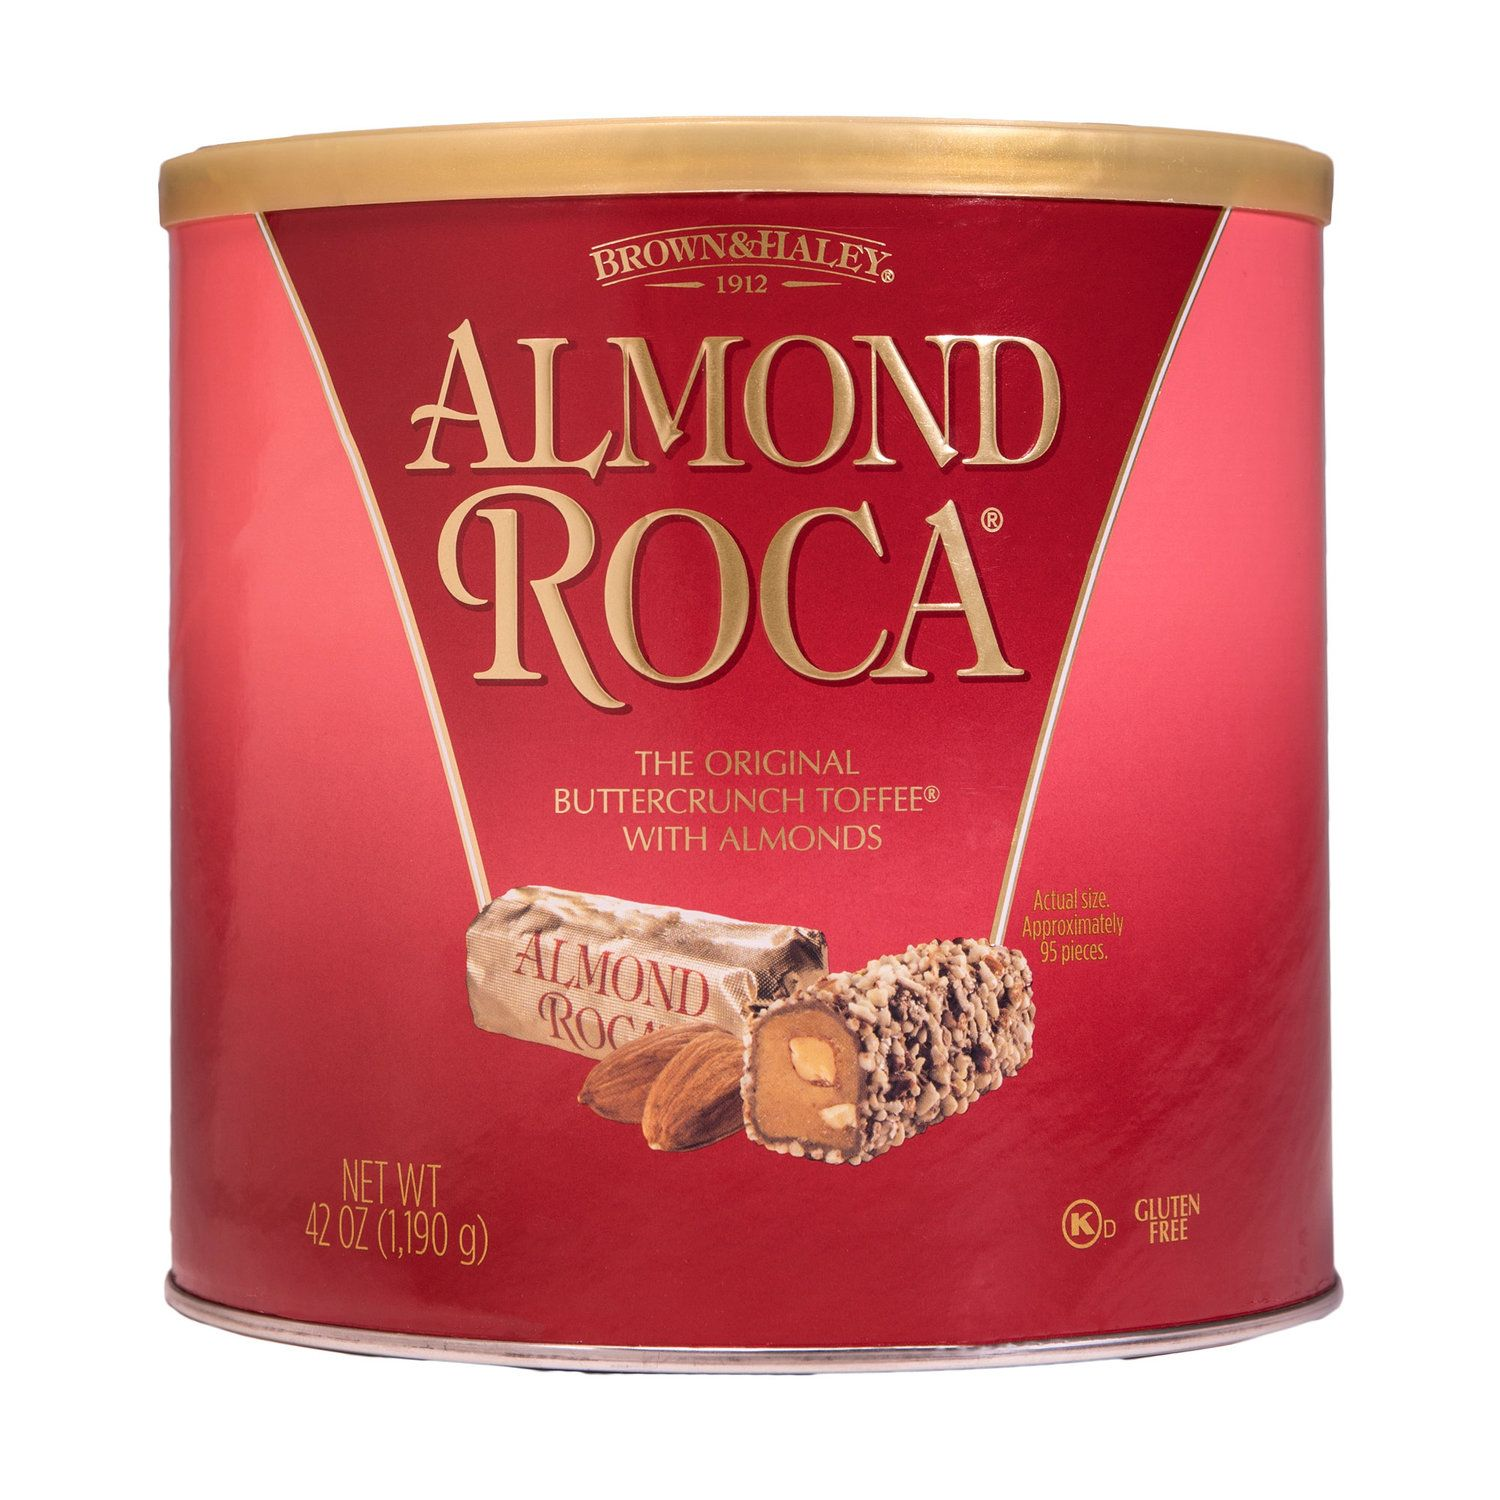 42 Oz Almond Roca Canister Brown Haley Almond Roca In 2020 Buttercrunch Toffee Almond Roca Jelly Bean Flavors